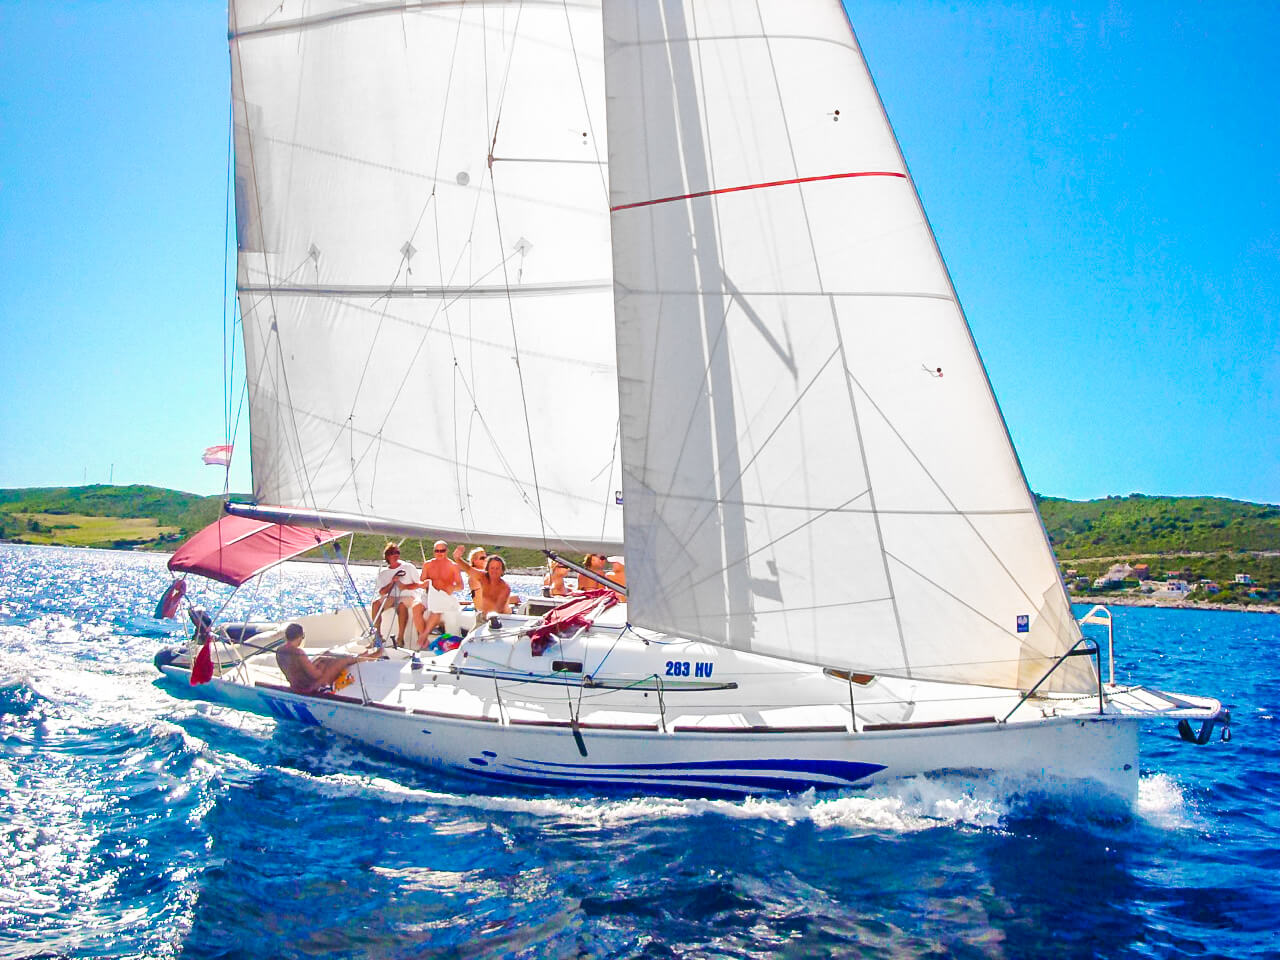 Hvar - Vis Sailing - Solo Travel  | Sail Away with new Friends to the Charming Island of Vis